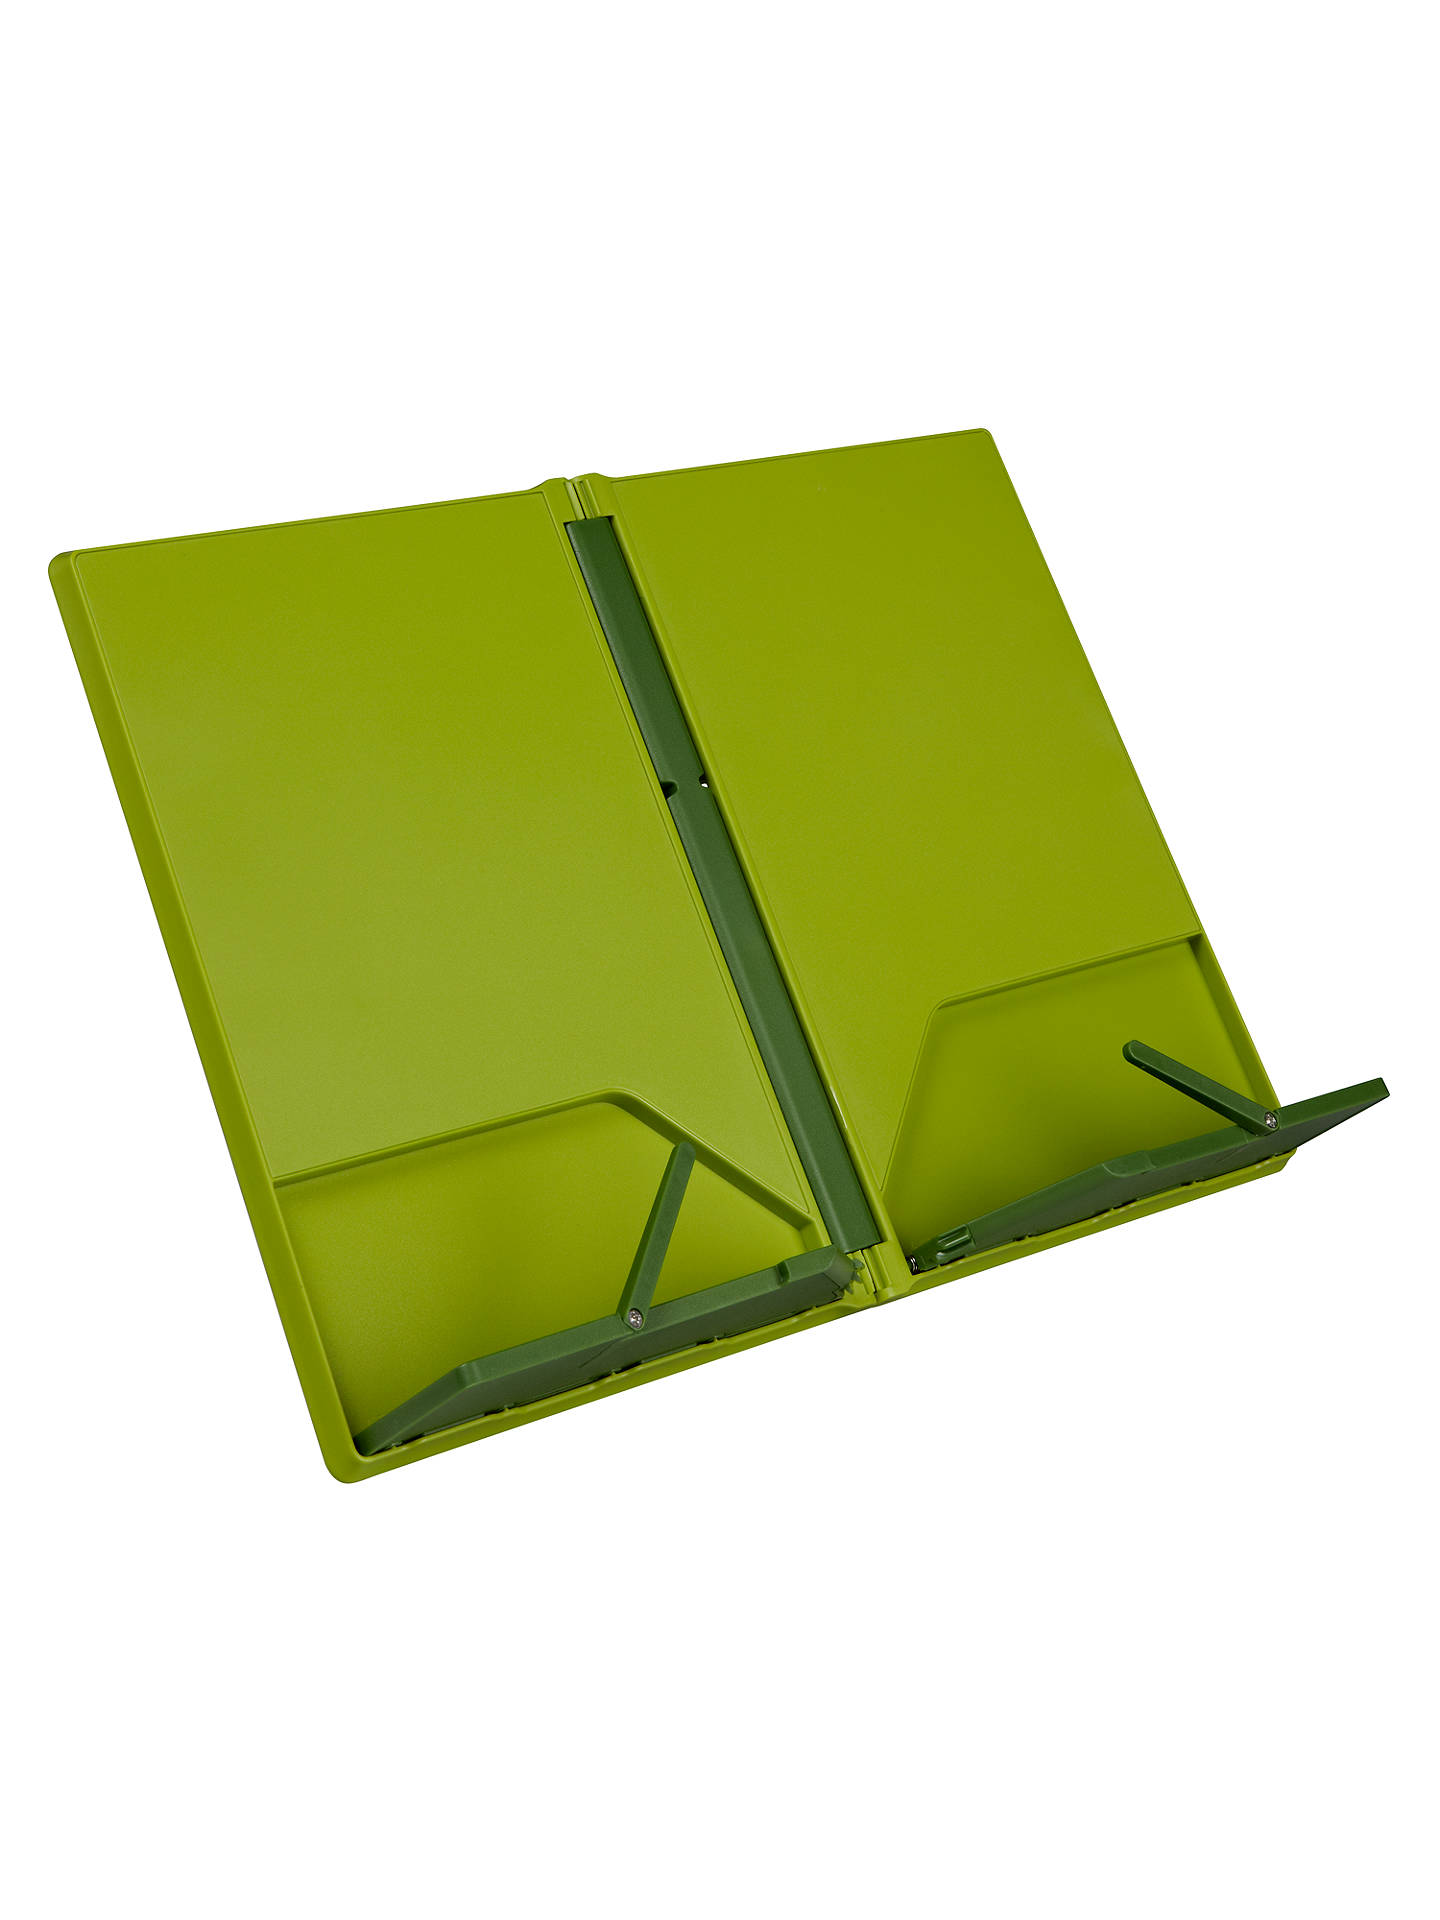 BuyJoseph Joseph CookBook Stand, Green Online at johnlewis.com